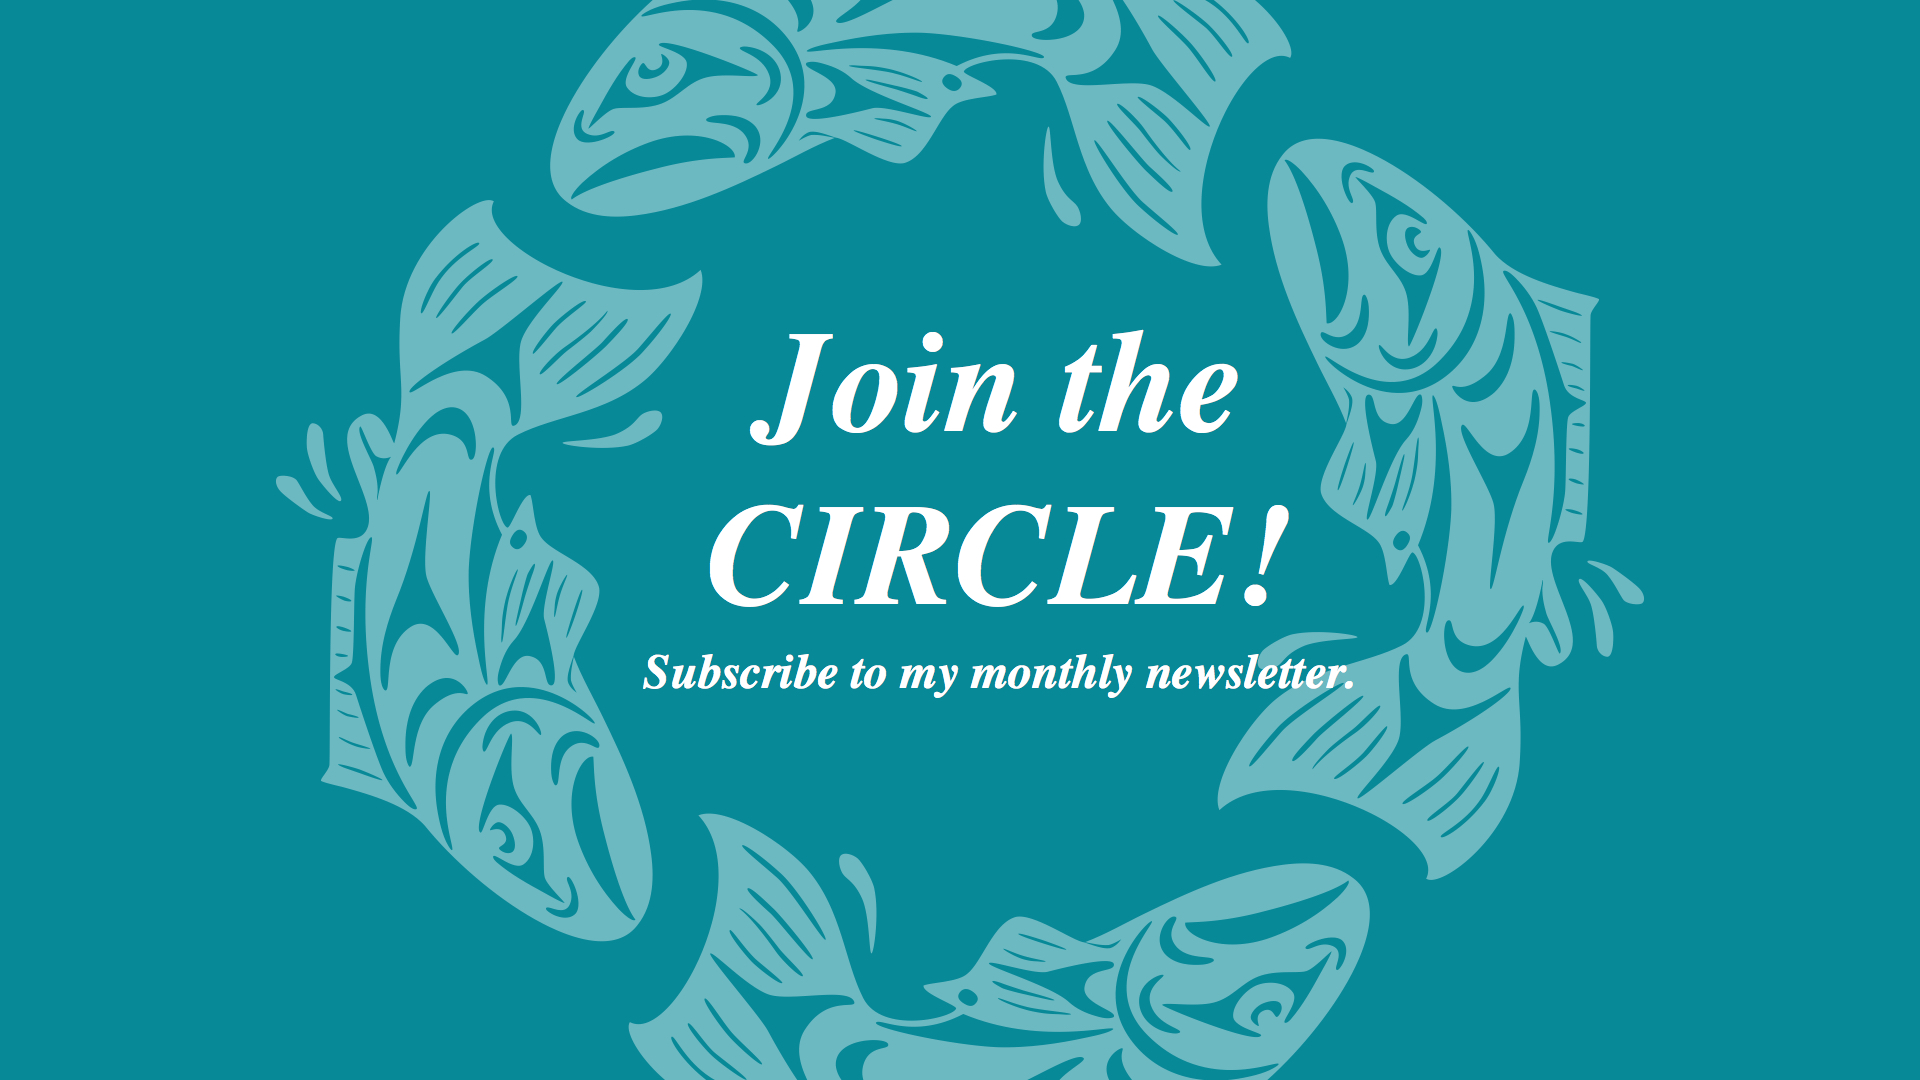 Join the Circle!